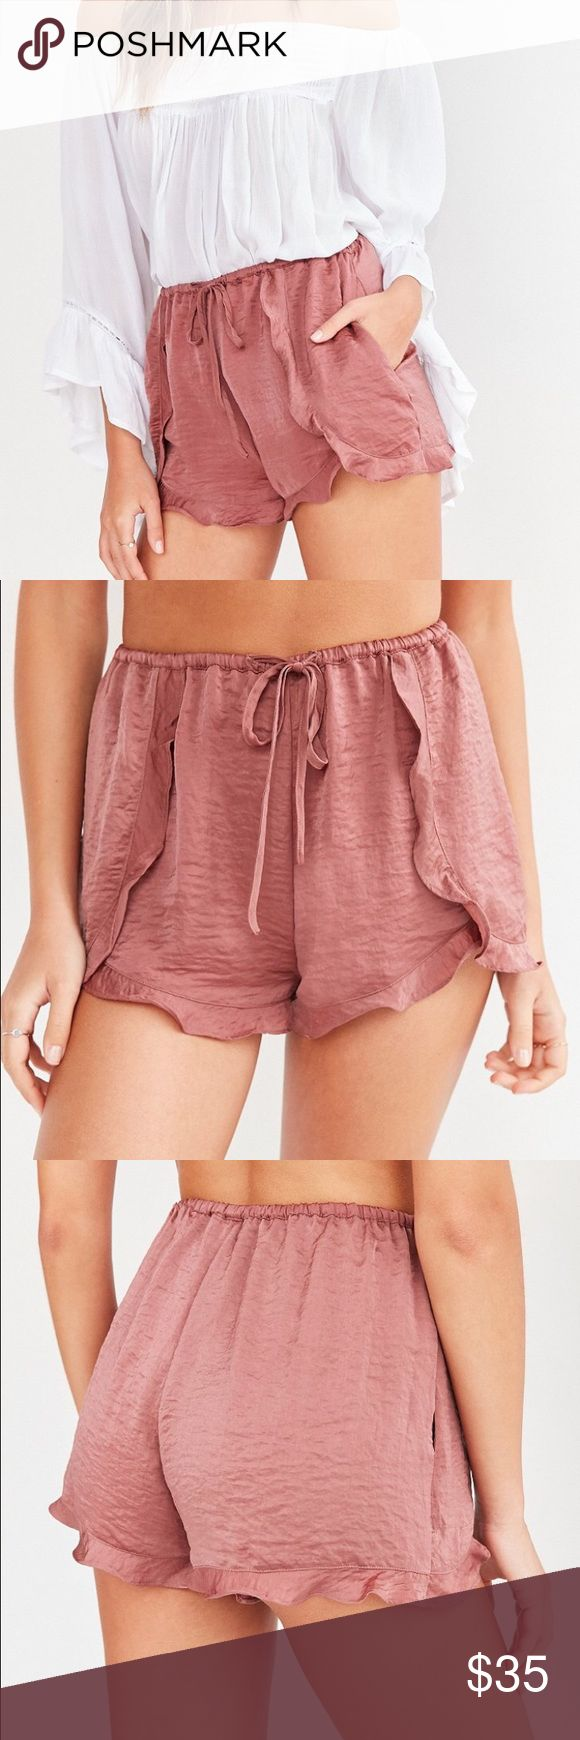 ‼️SALE‼️ UO Crinkle Satin Ruffle Shorts (S) *NWT* Floaty, romantic ruffle-hem dolphin shorts in softly crinkled satin from UO's forever feminine label, ECOTE.   * Mid-rise  * Pull-on * Adjustable tie at waist * Side pockets * Polyester * Hand wash * Imported  Size:     SMALL Color:   MAUVE Retail:   $54.00  *** NEW WITH TAG *** Urban Outfitters Shorts